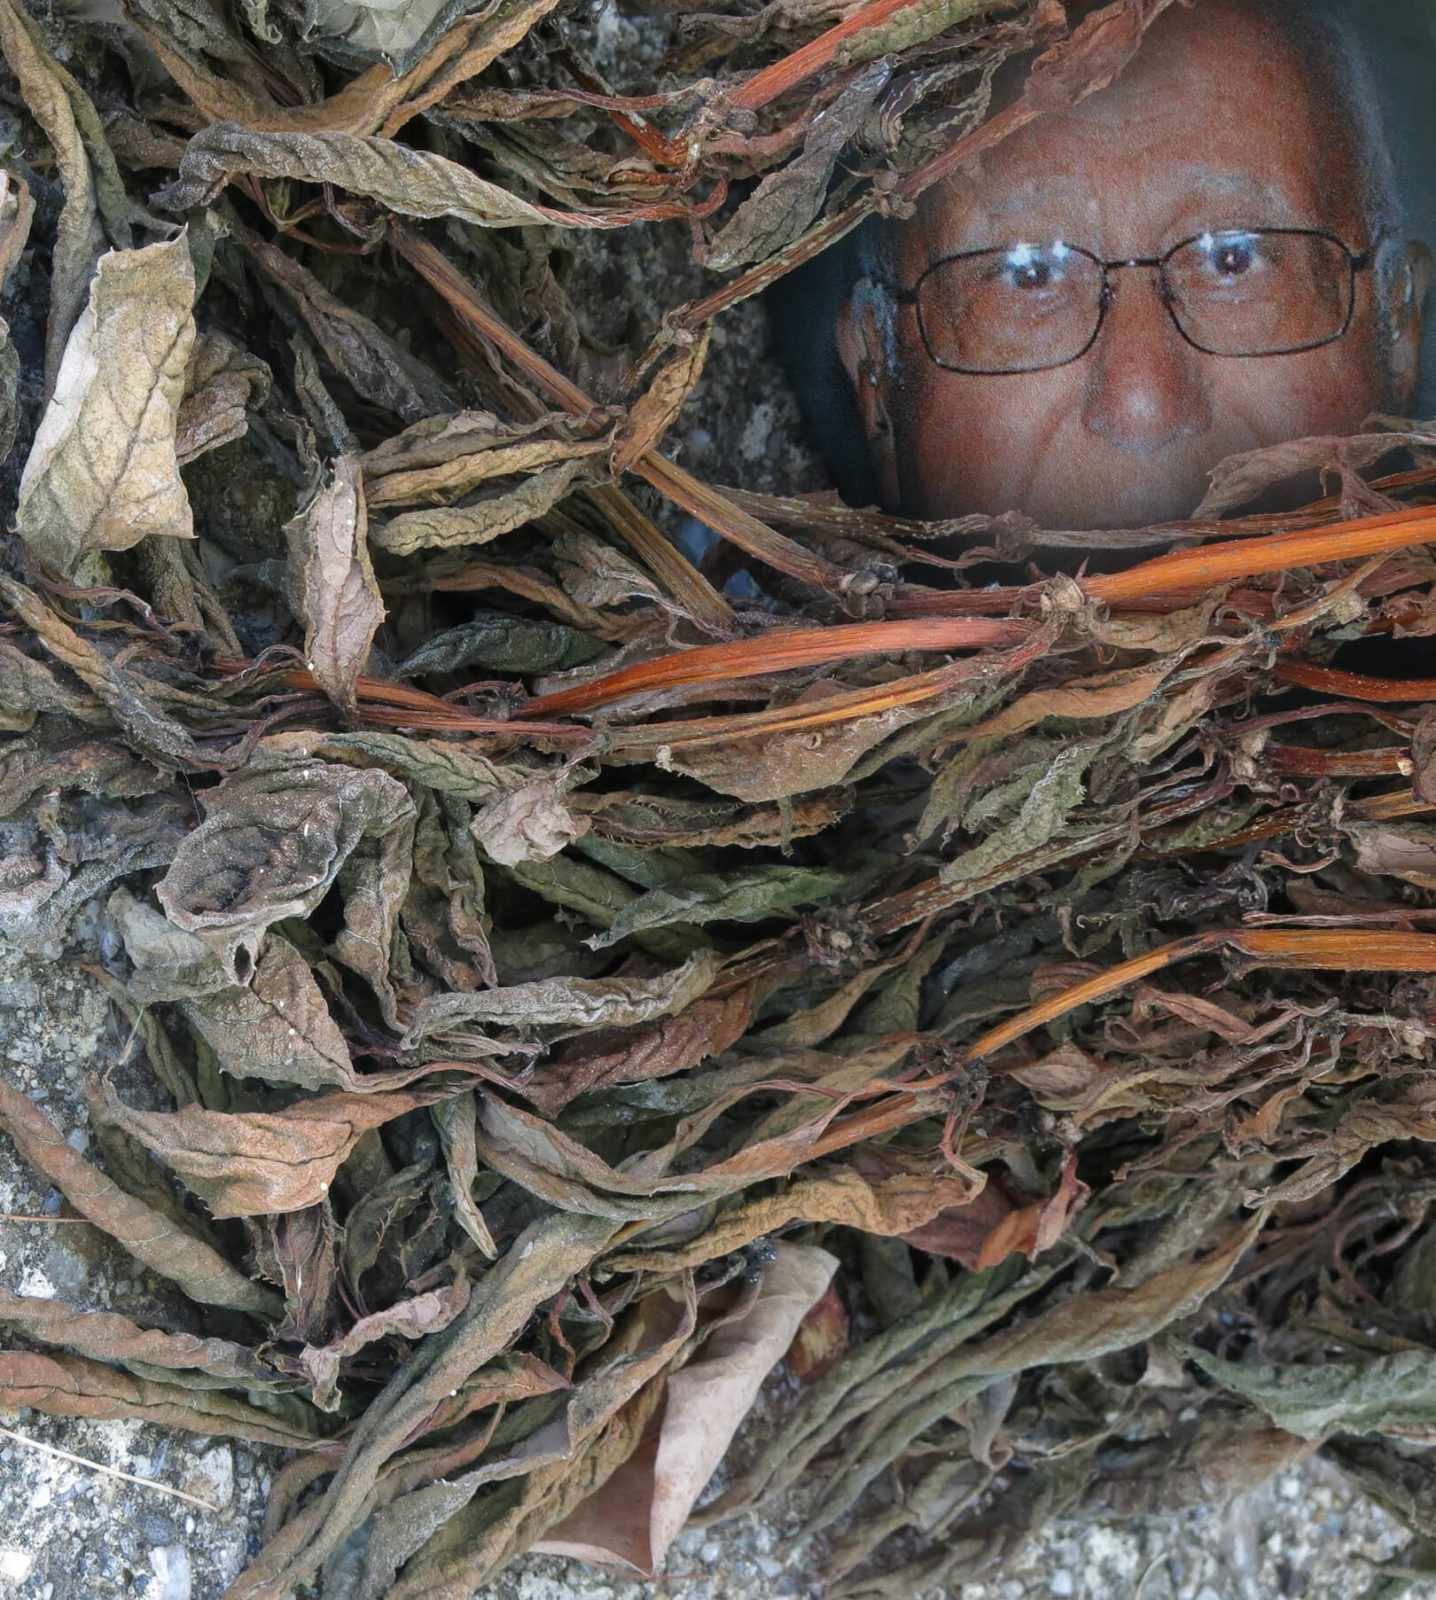 Father of Robin Botie in Ithaca, New York, peaks out from behind dead plants.